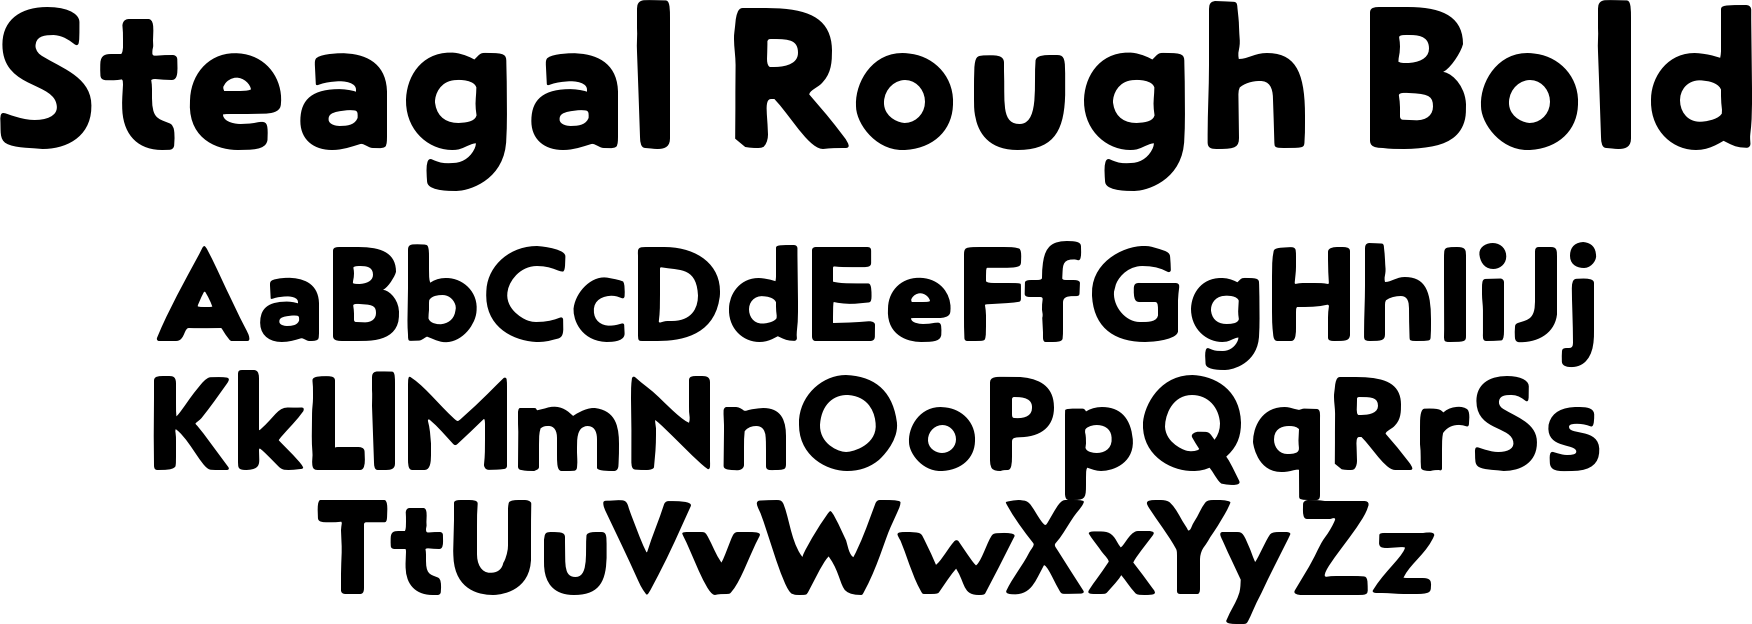 Steagal Rough Bold